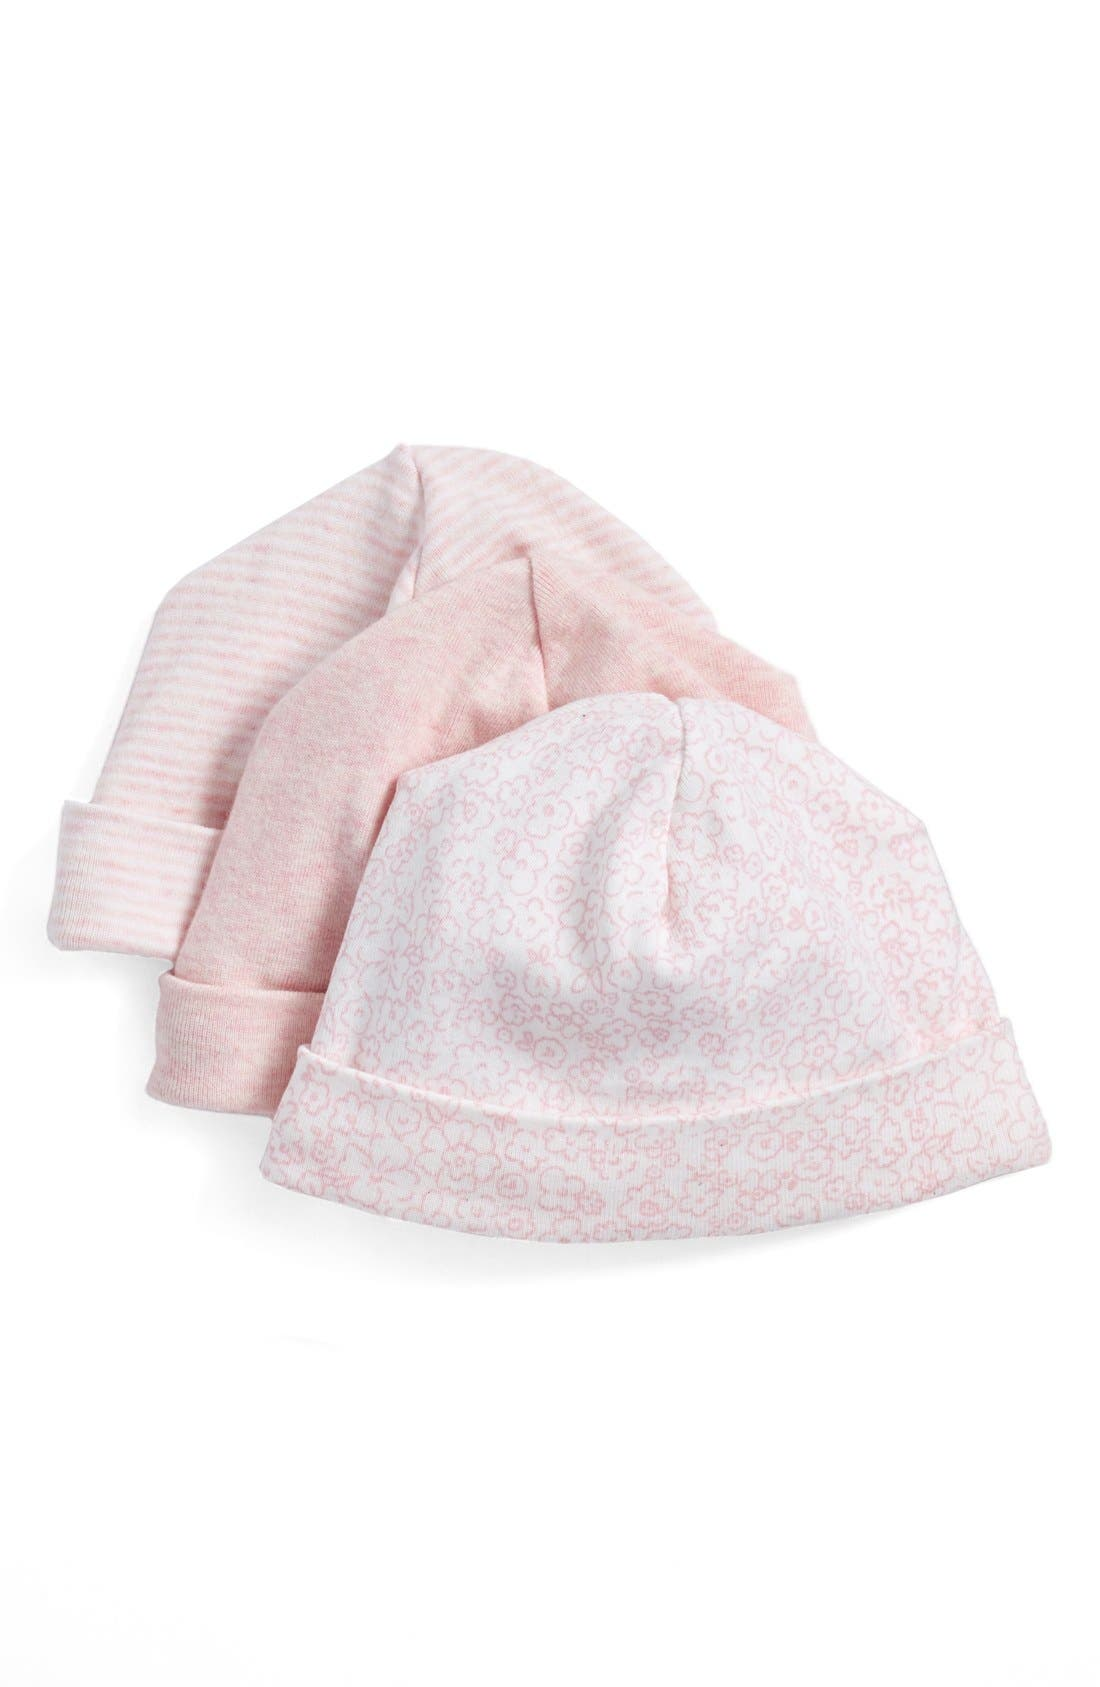 Alternate Image 1 Selected - Nordstrom Baby Beanie Hats (3-Pack) (Baby)